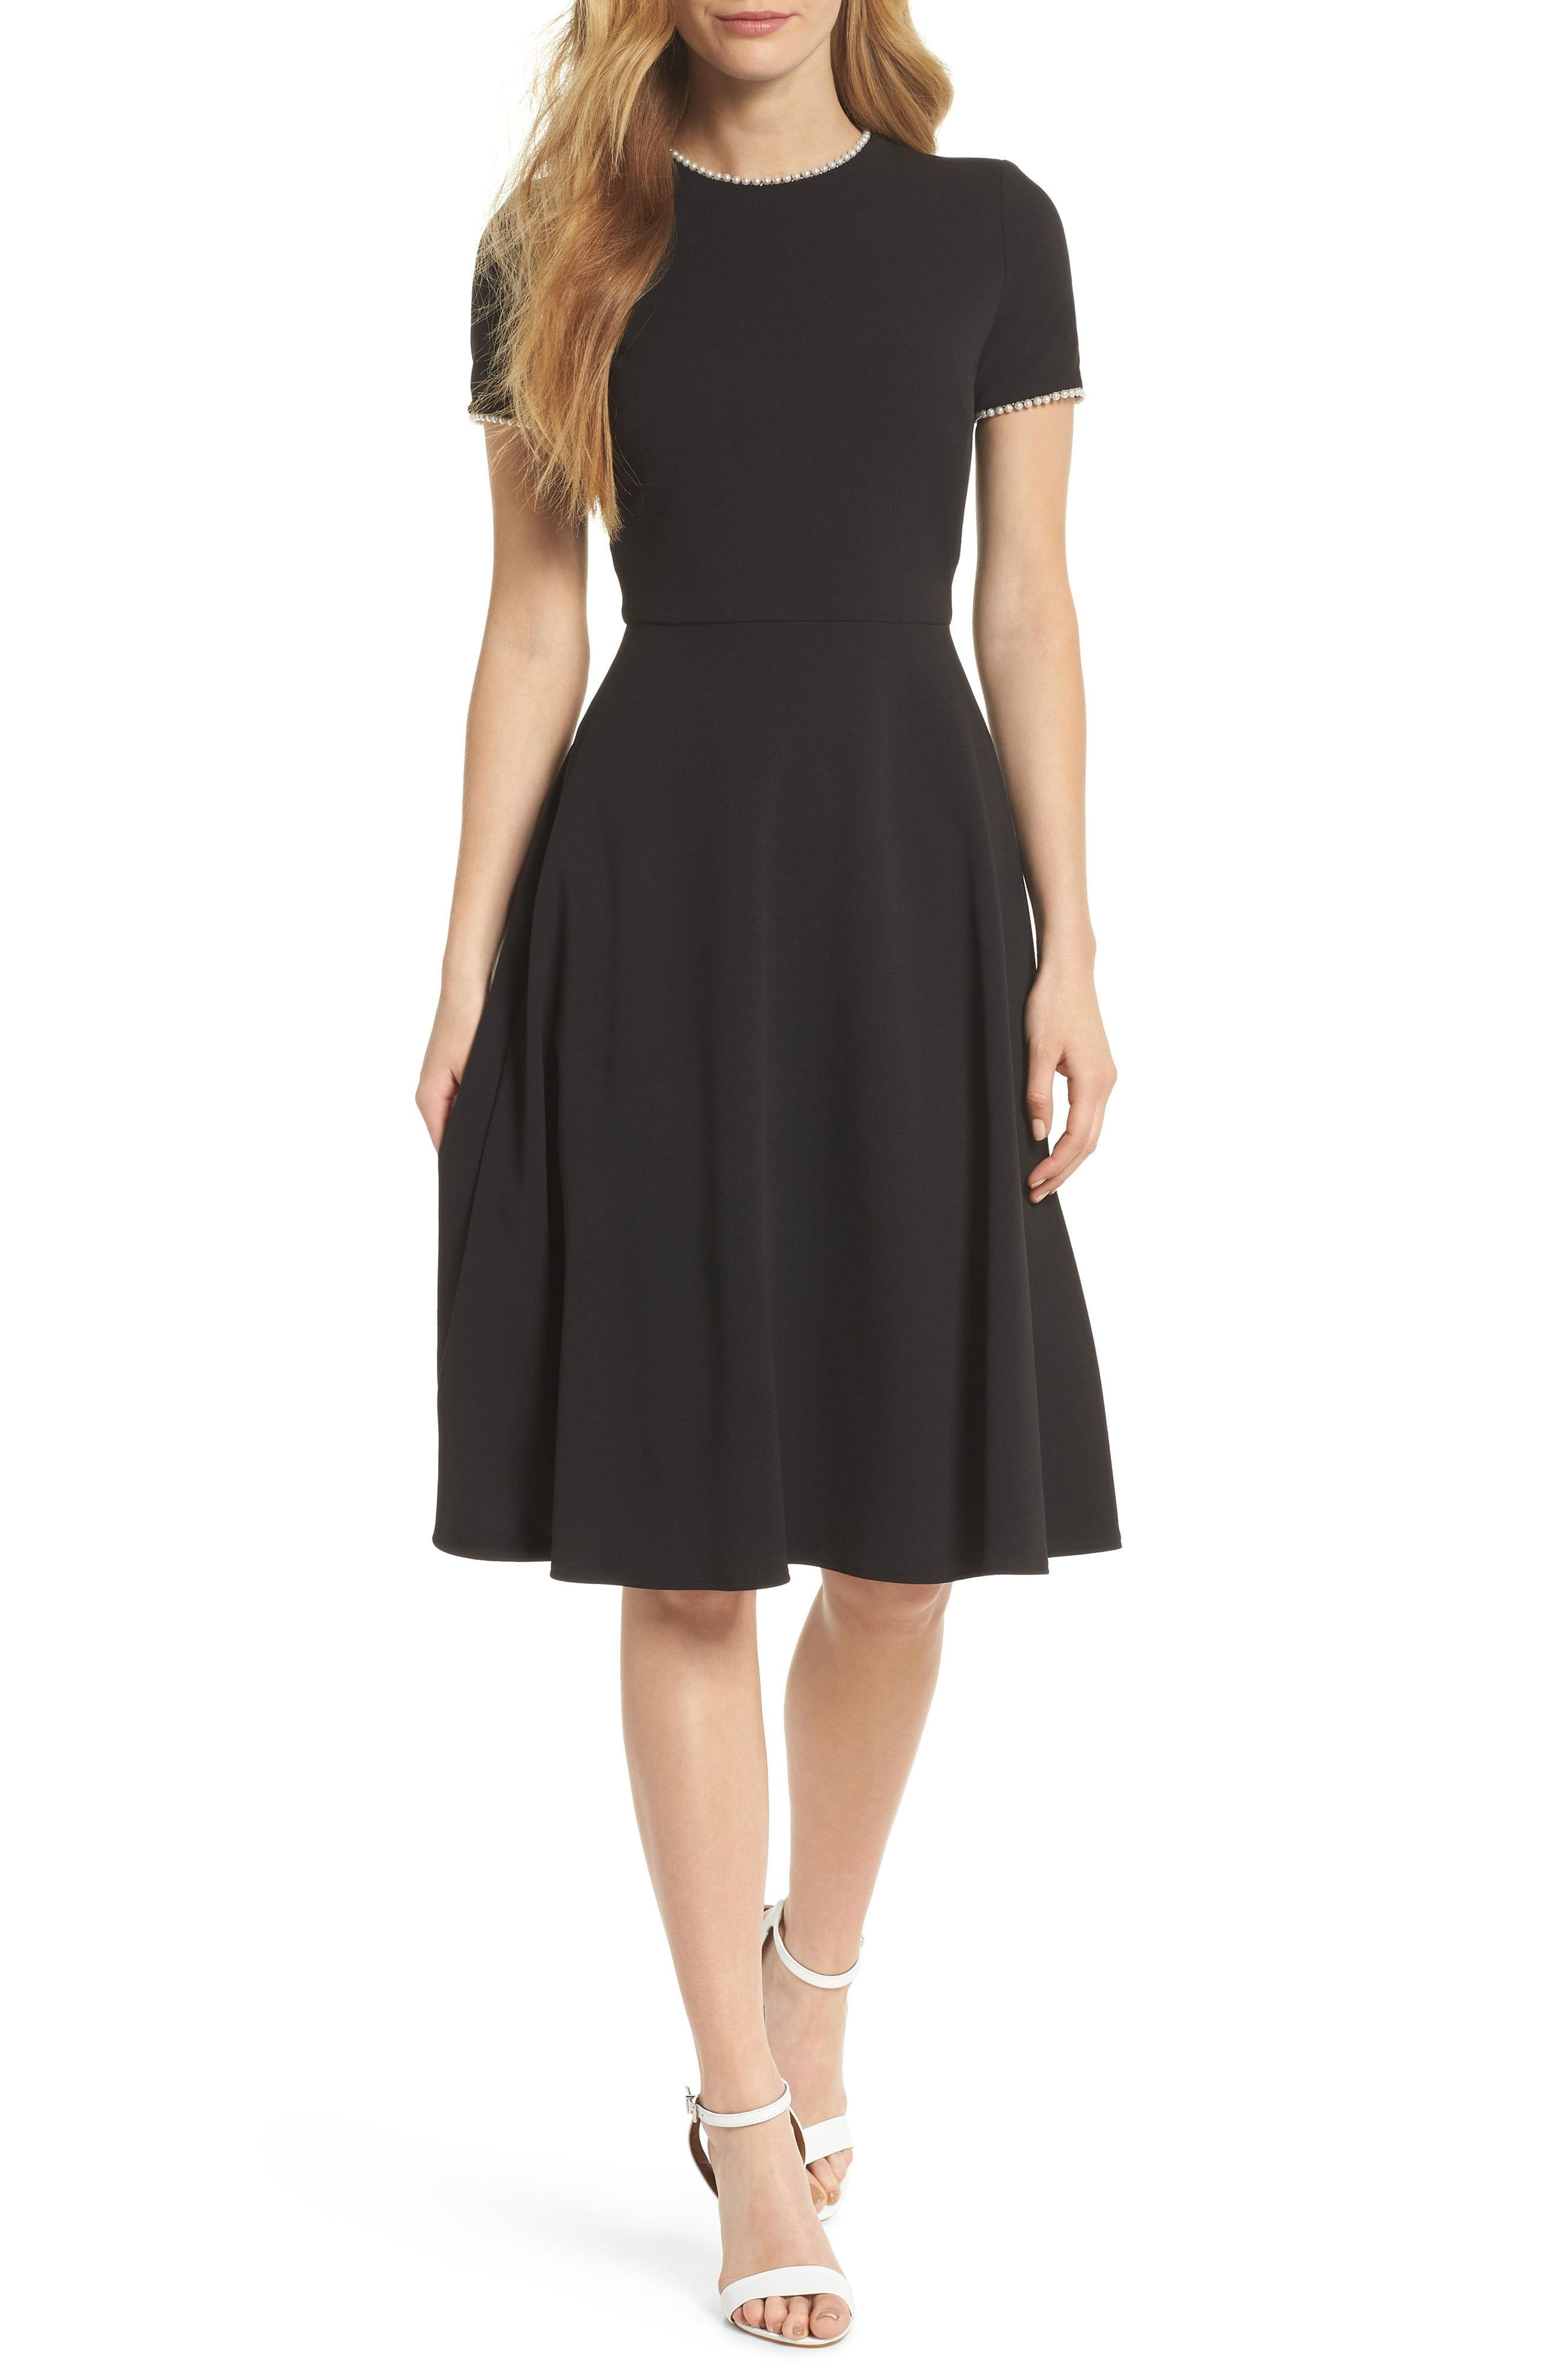 Gal Meets Glam Collection Victoria Pearly Trim Fit Flare Cocktail Dress Nordstrom Exclusive Nordstrom Fit And Flare Cocktail Dress Nordstrom Dresses Fit Flare Dress [ 4048 x 2640 Pixel ]